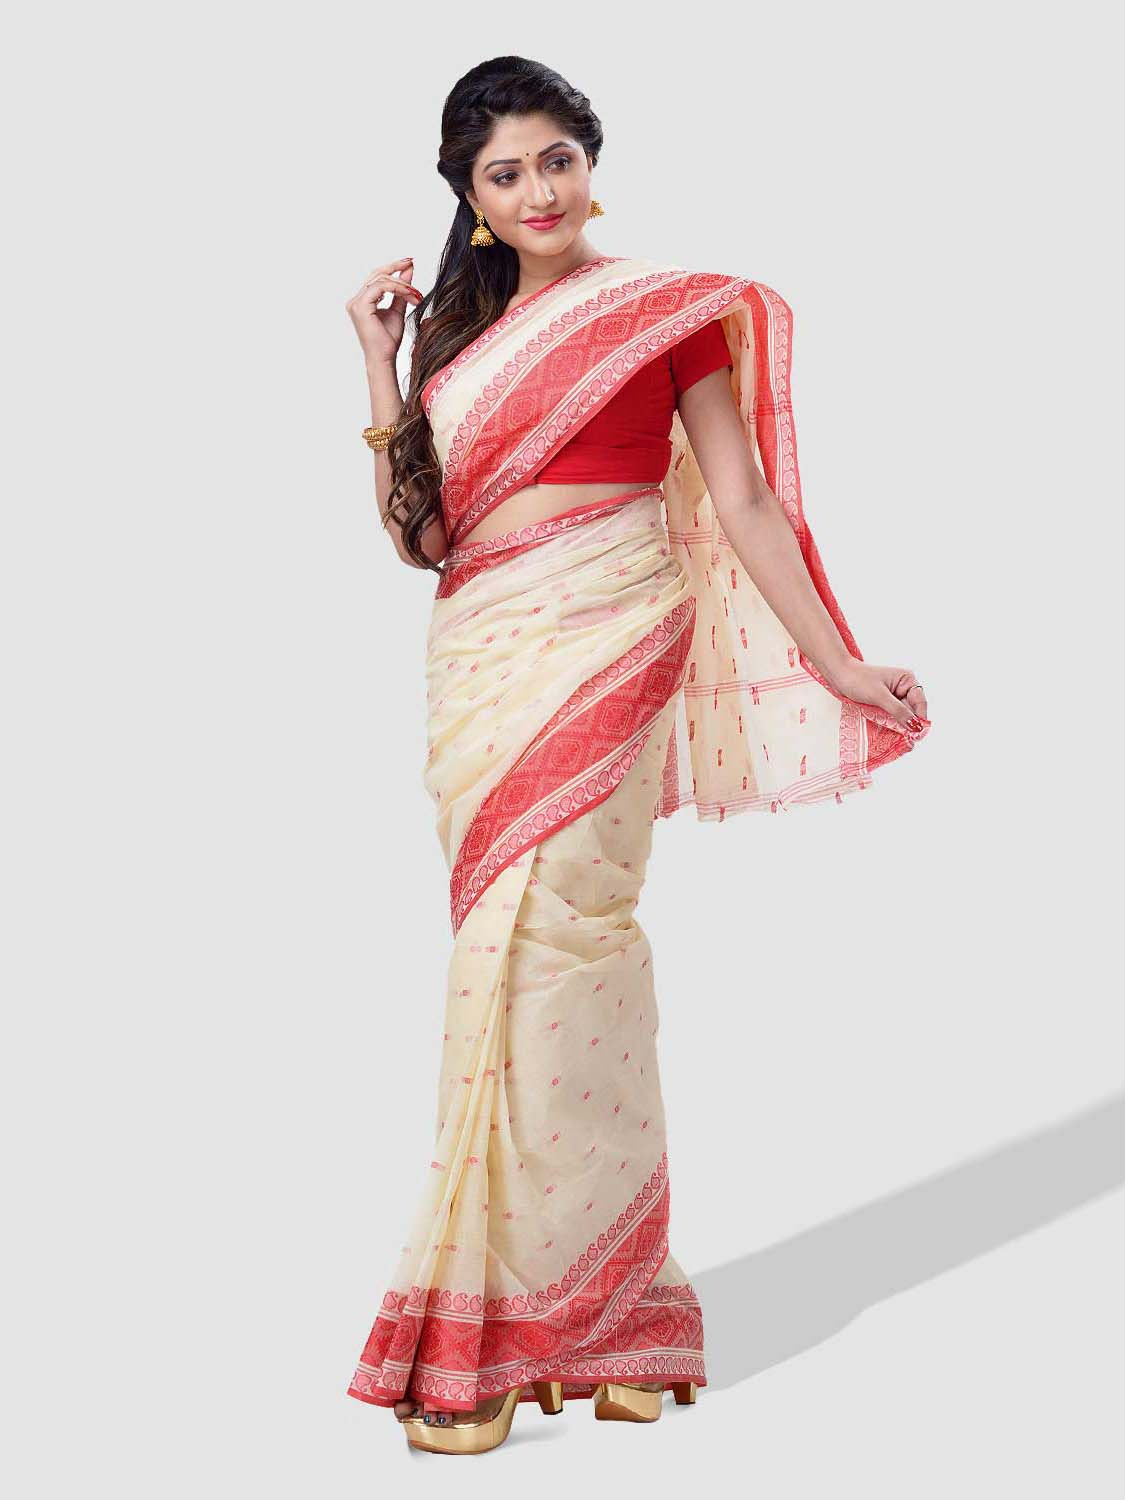 Bengal Soft Cotton Tant Saree Santipur Handloom with Fine Bengali Cotton Saree Handmade Whole Body Design